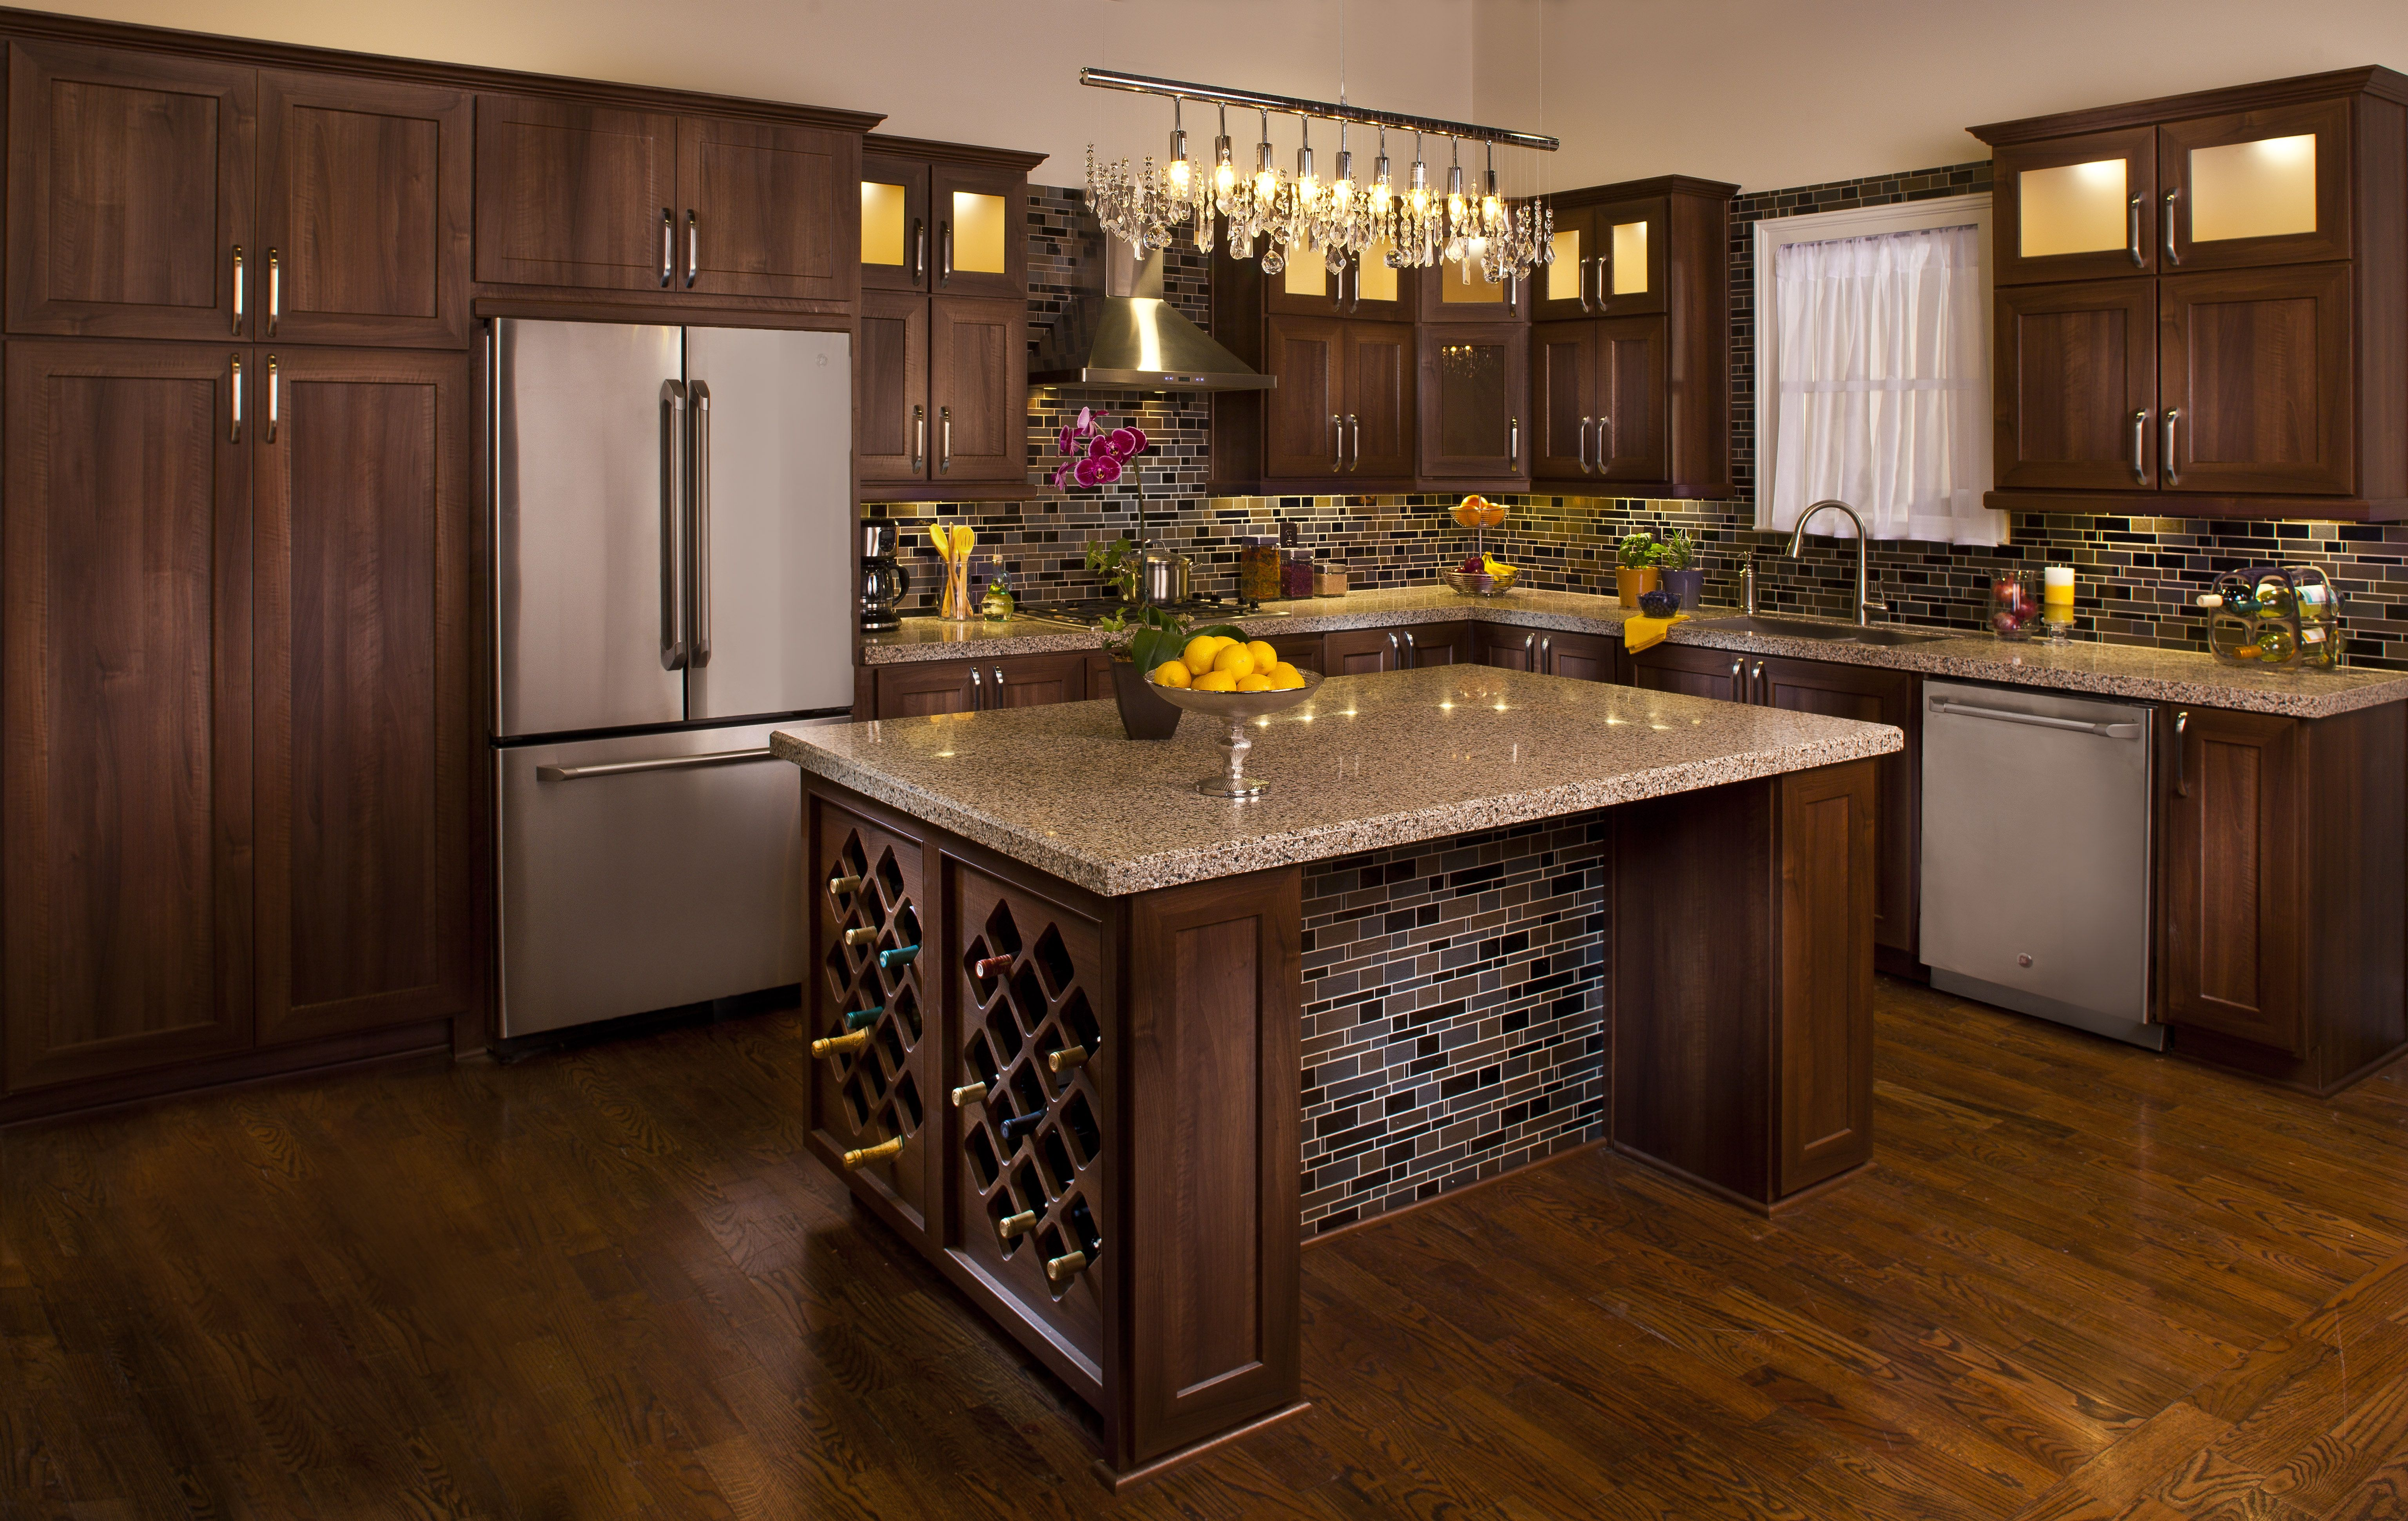 17 Best images about Kitchens on Pinterest   White granite ...